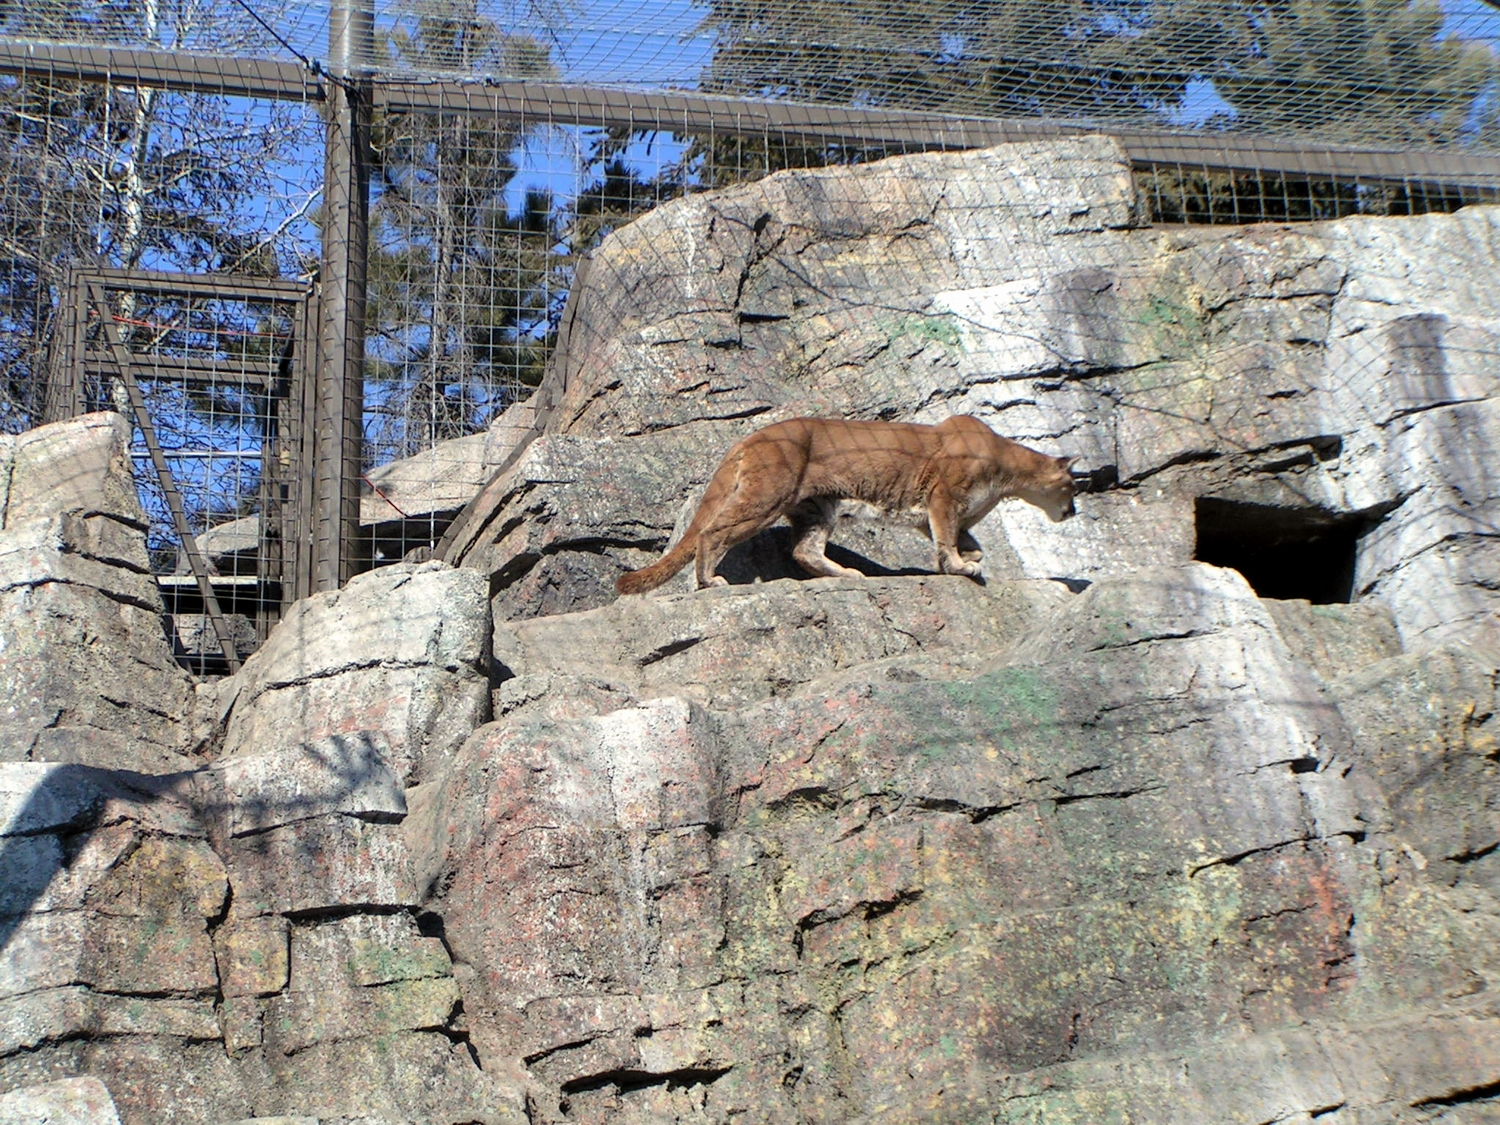 http://upload.wikimedia.org/wikipedia/commons/7/75/Calgary_Zoo-Rocky_Mountains-cougar.JPG